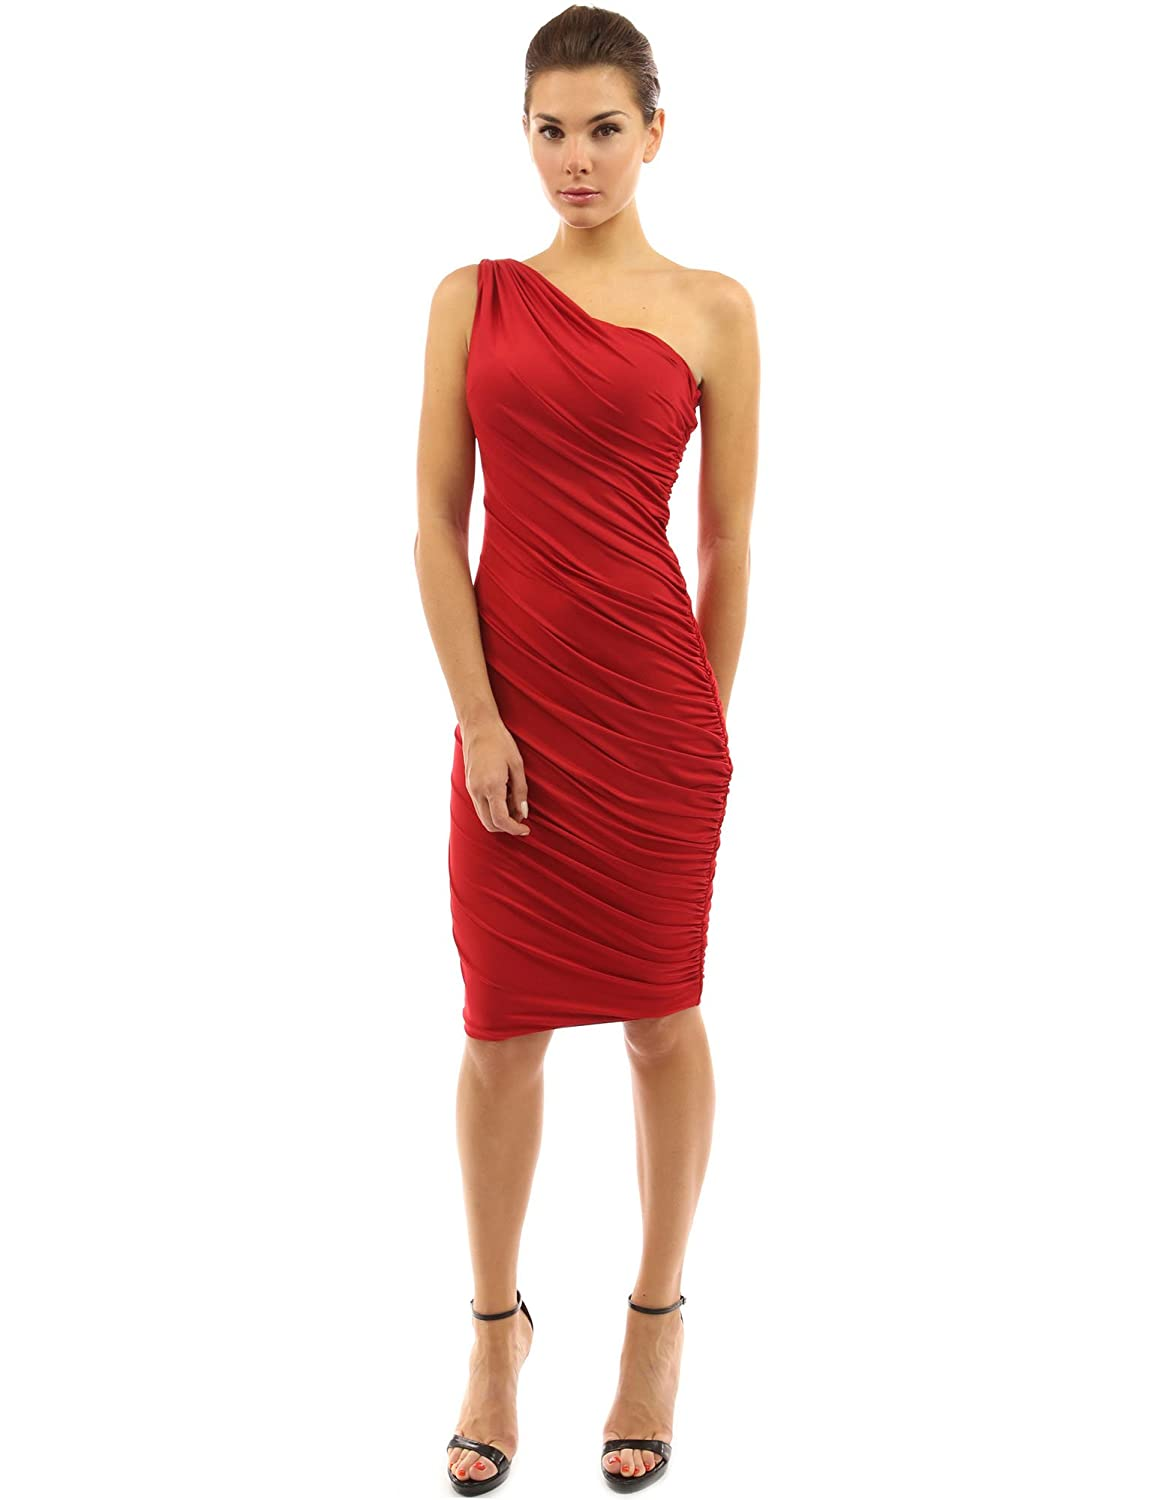 Amazon.com: PattyBoutik Women\'s One Shoulder Cocktail Dress: Clothing